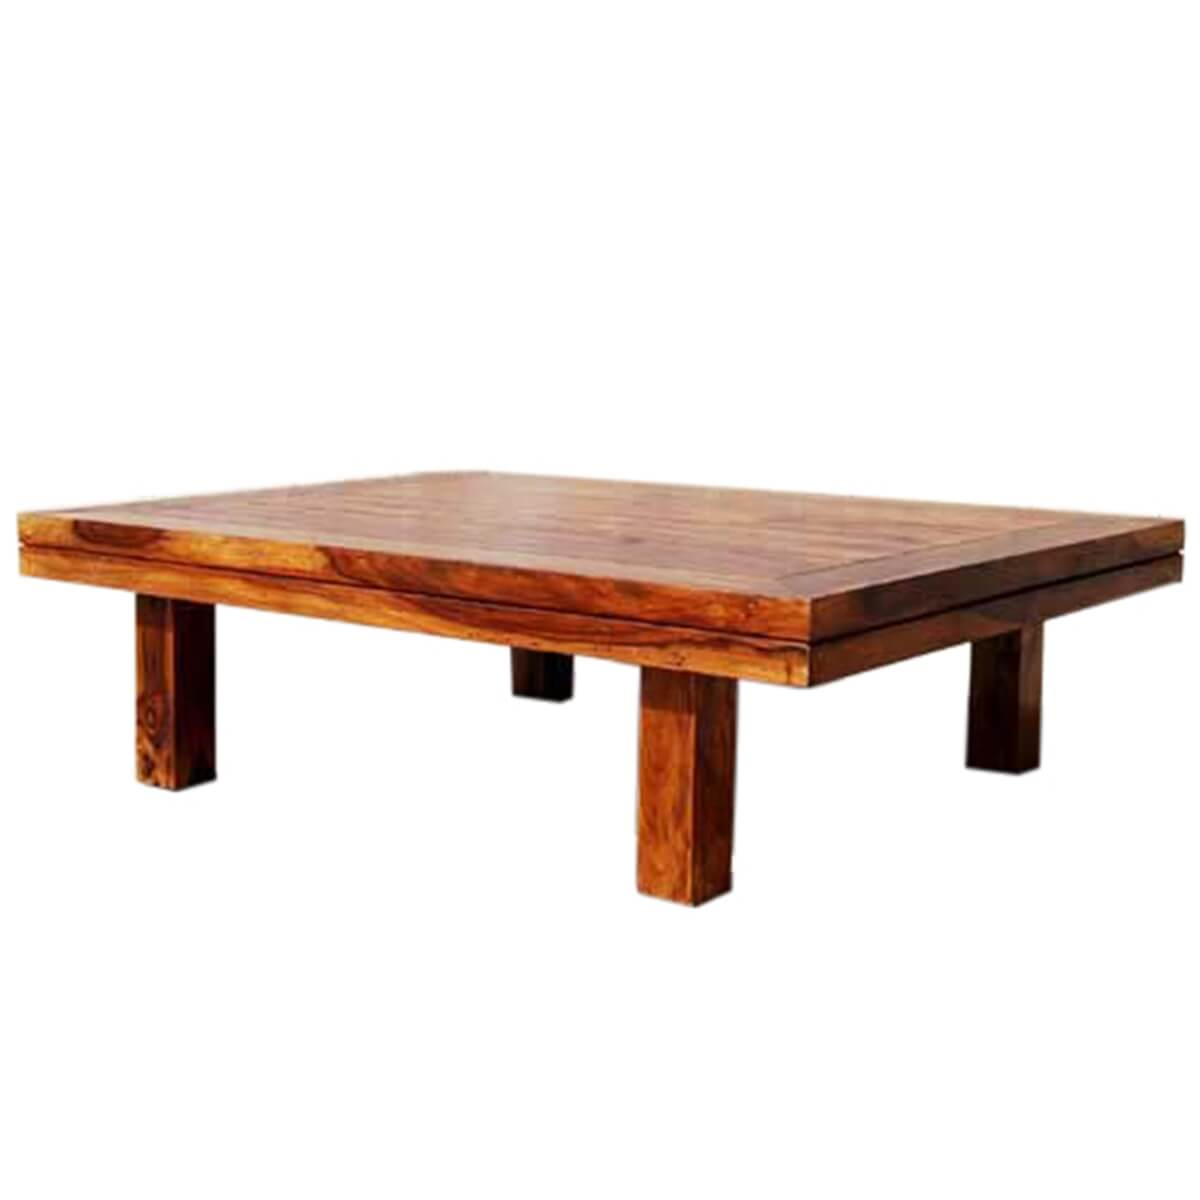 coffee table height 28 images low height wood mission